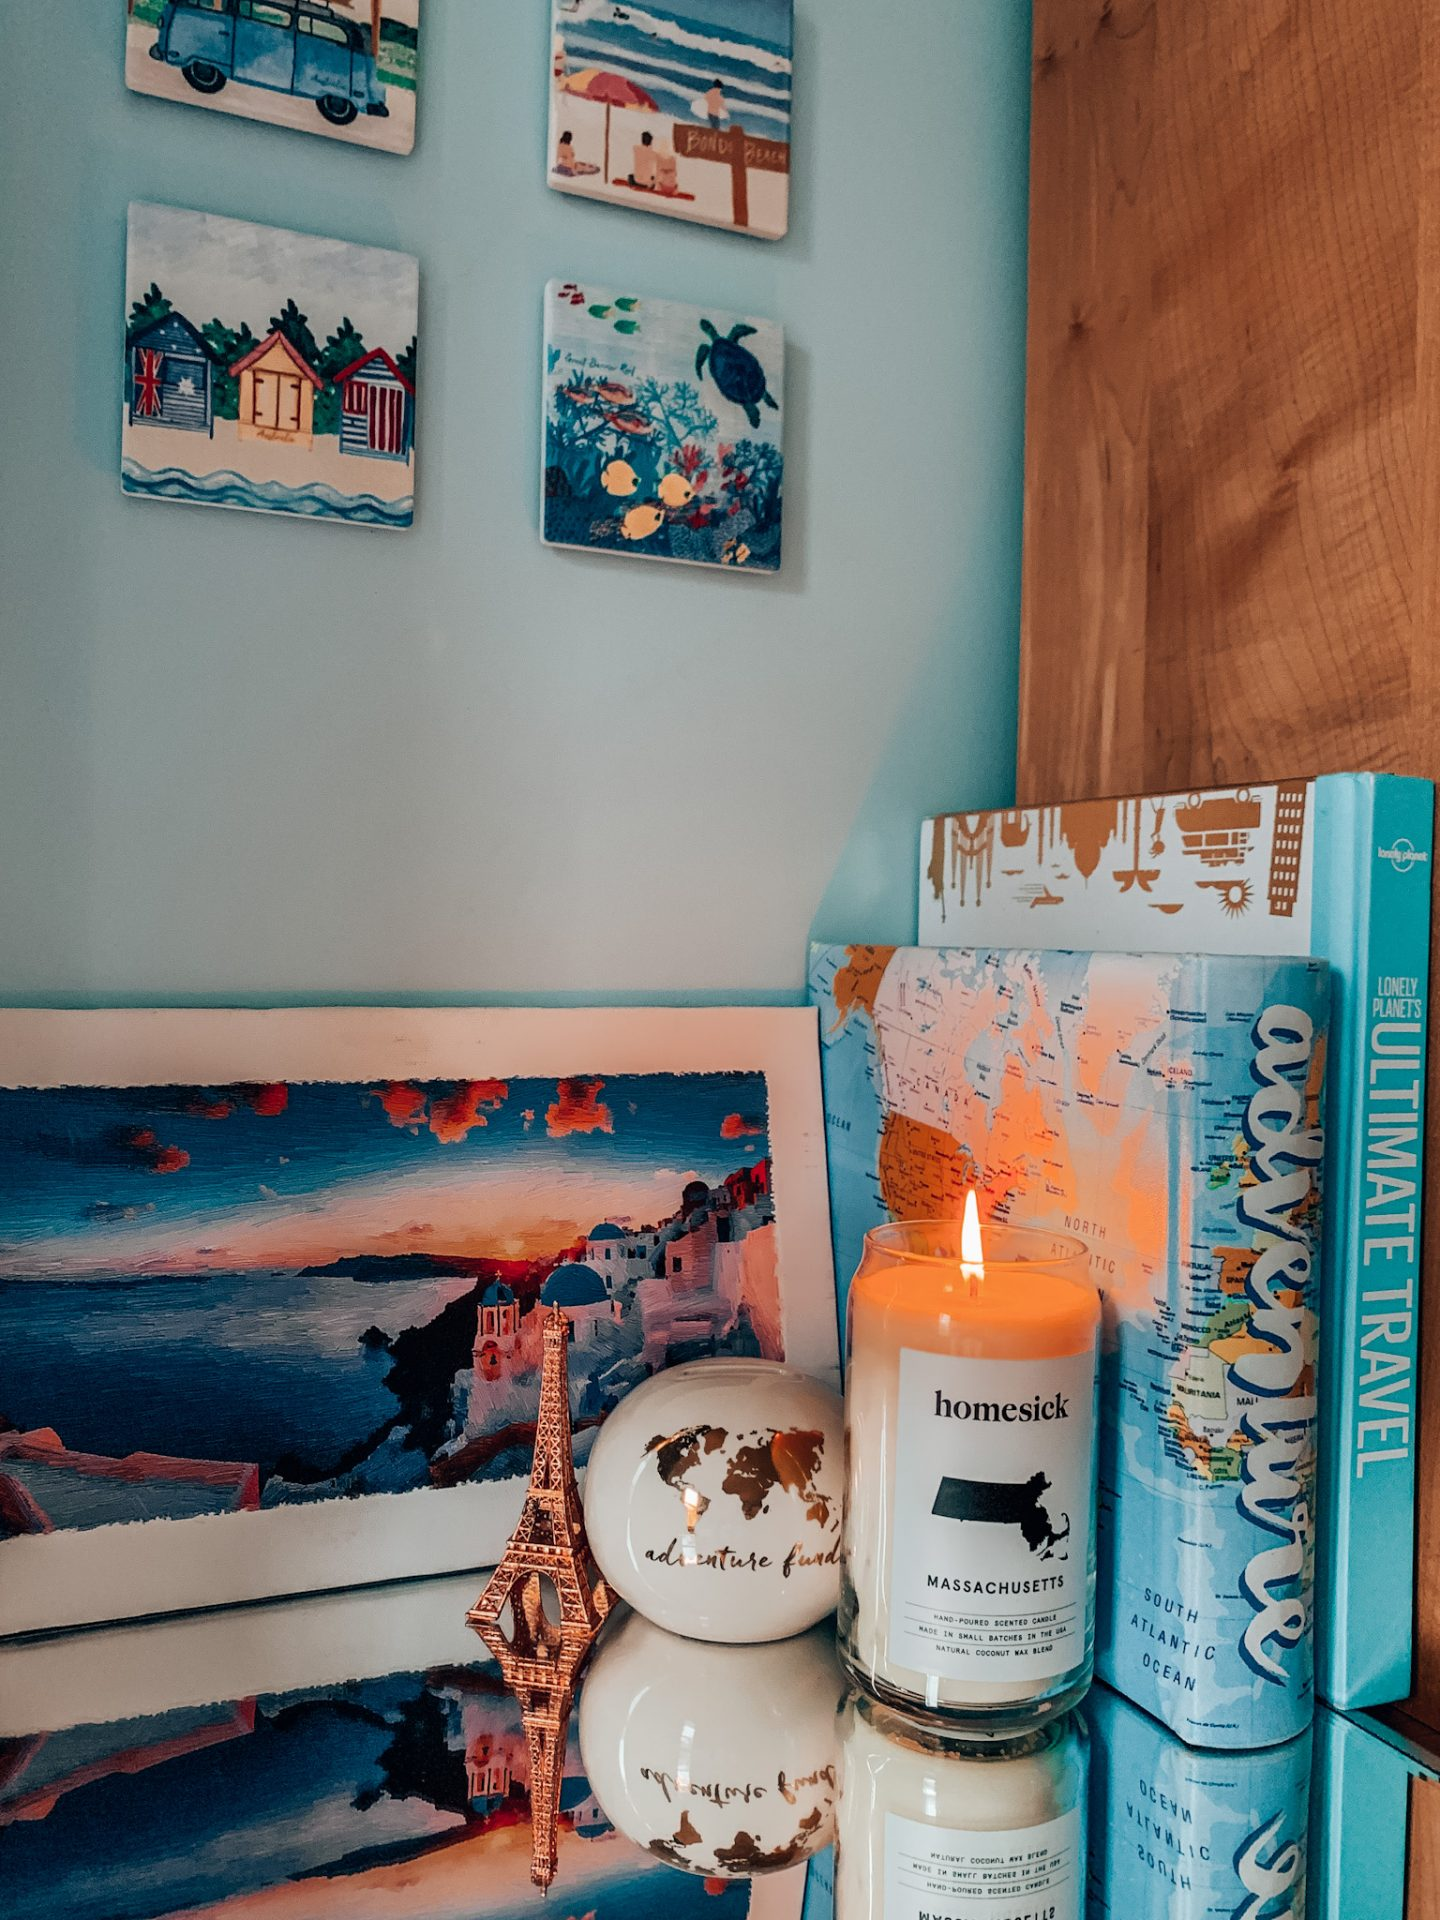 This Homesick Candle was the perfect addition to my little travel corner.